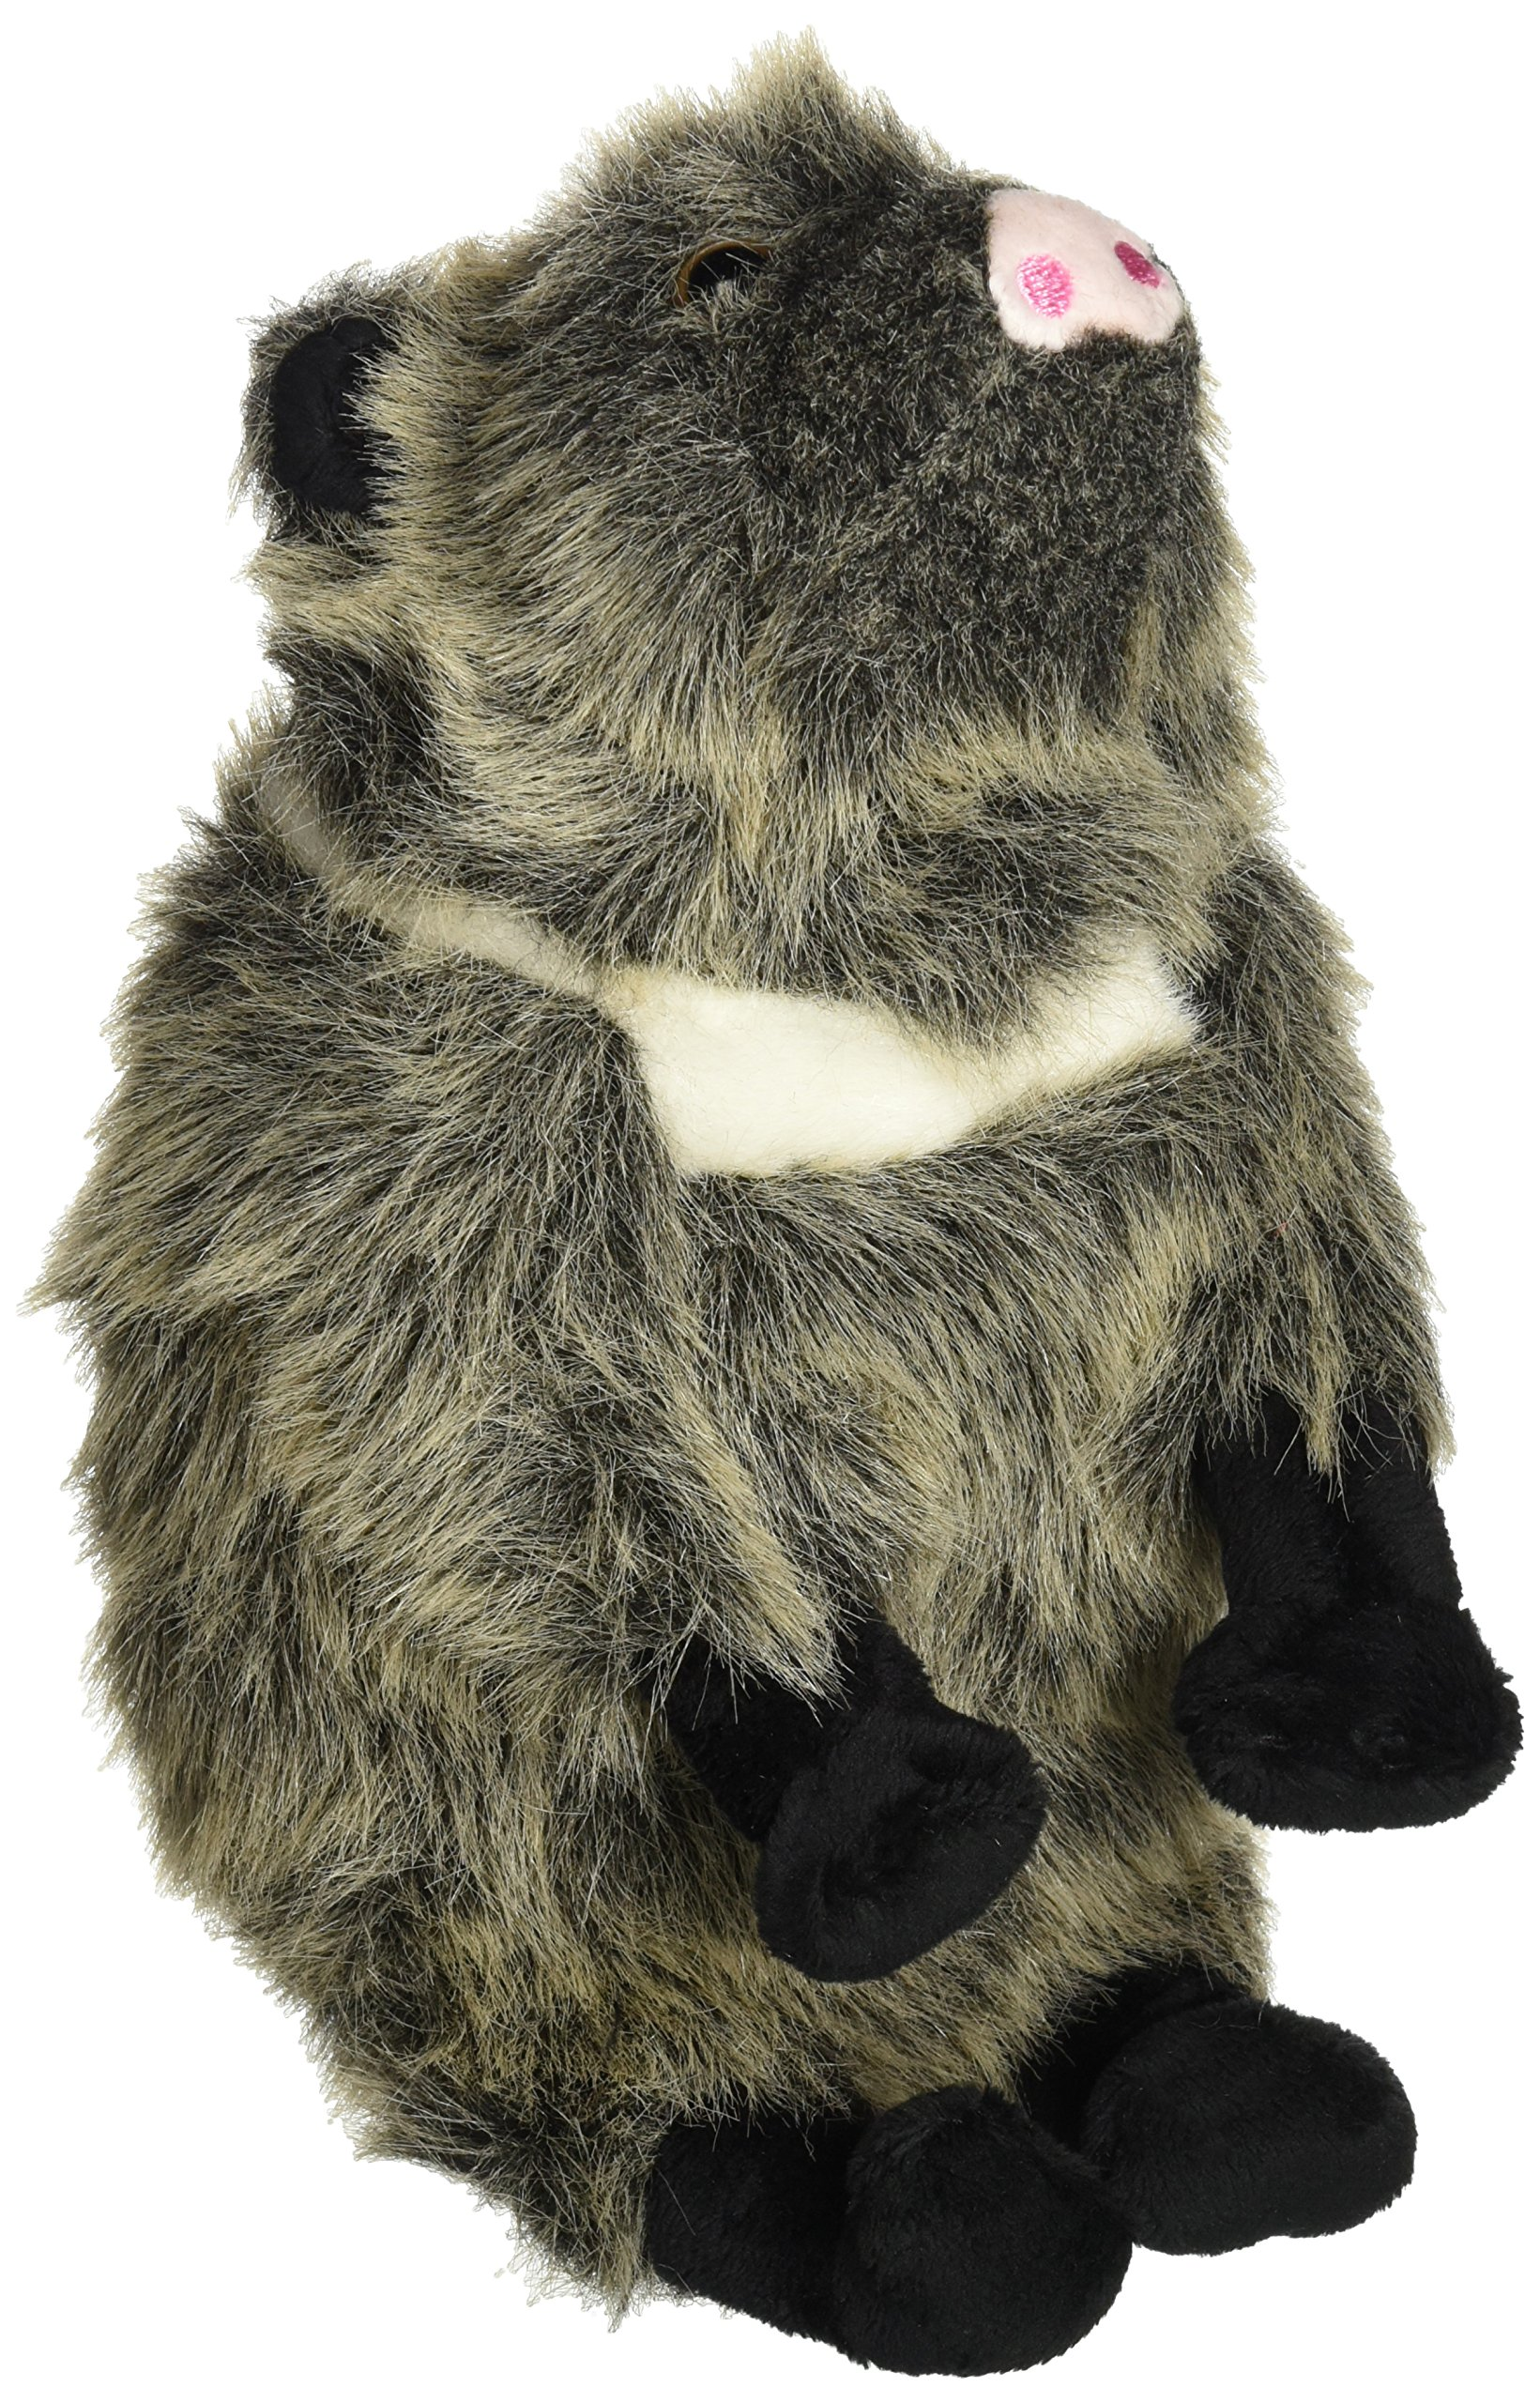 Wishpets Stuffed Animal - Soft Plush Toy for Kids - 10'' Standing Javelina